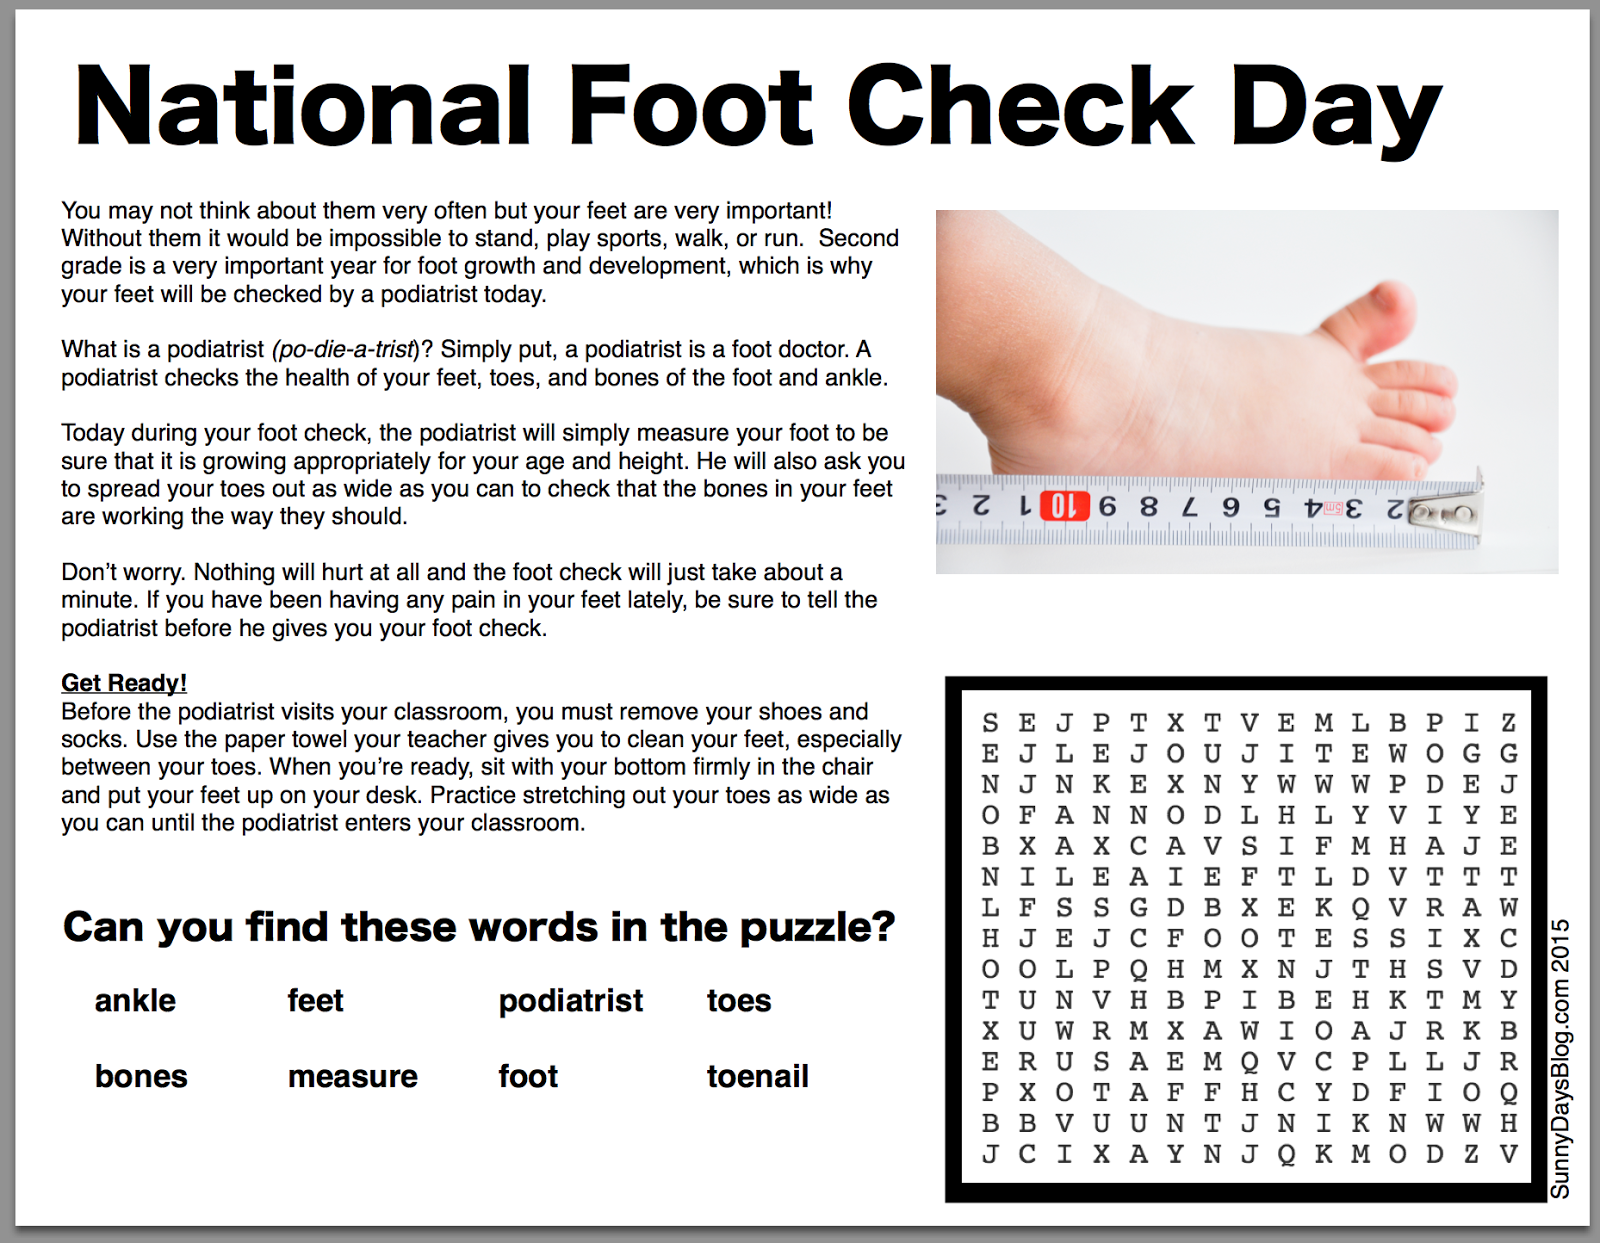 National Foot Check Day Epic April Fools Idea